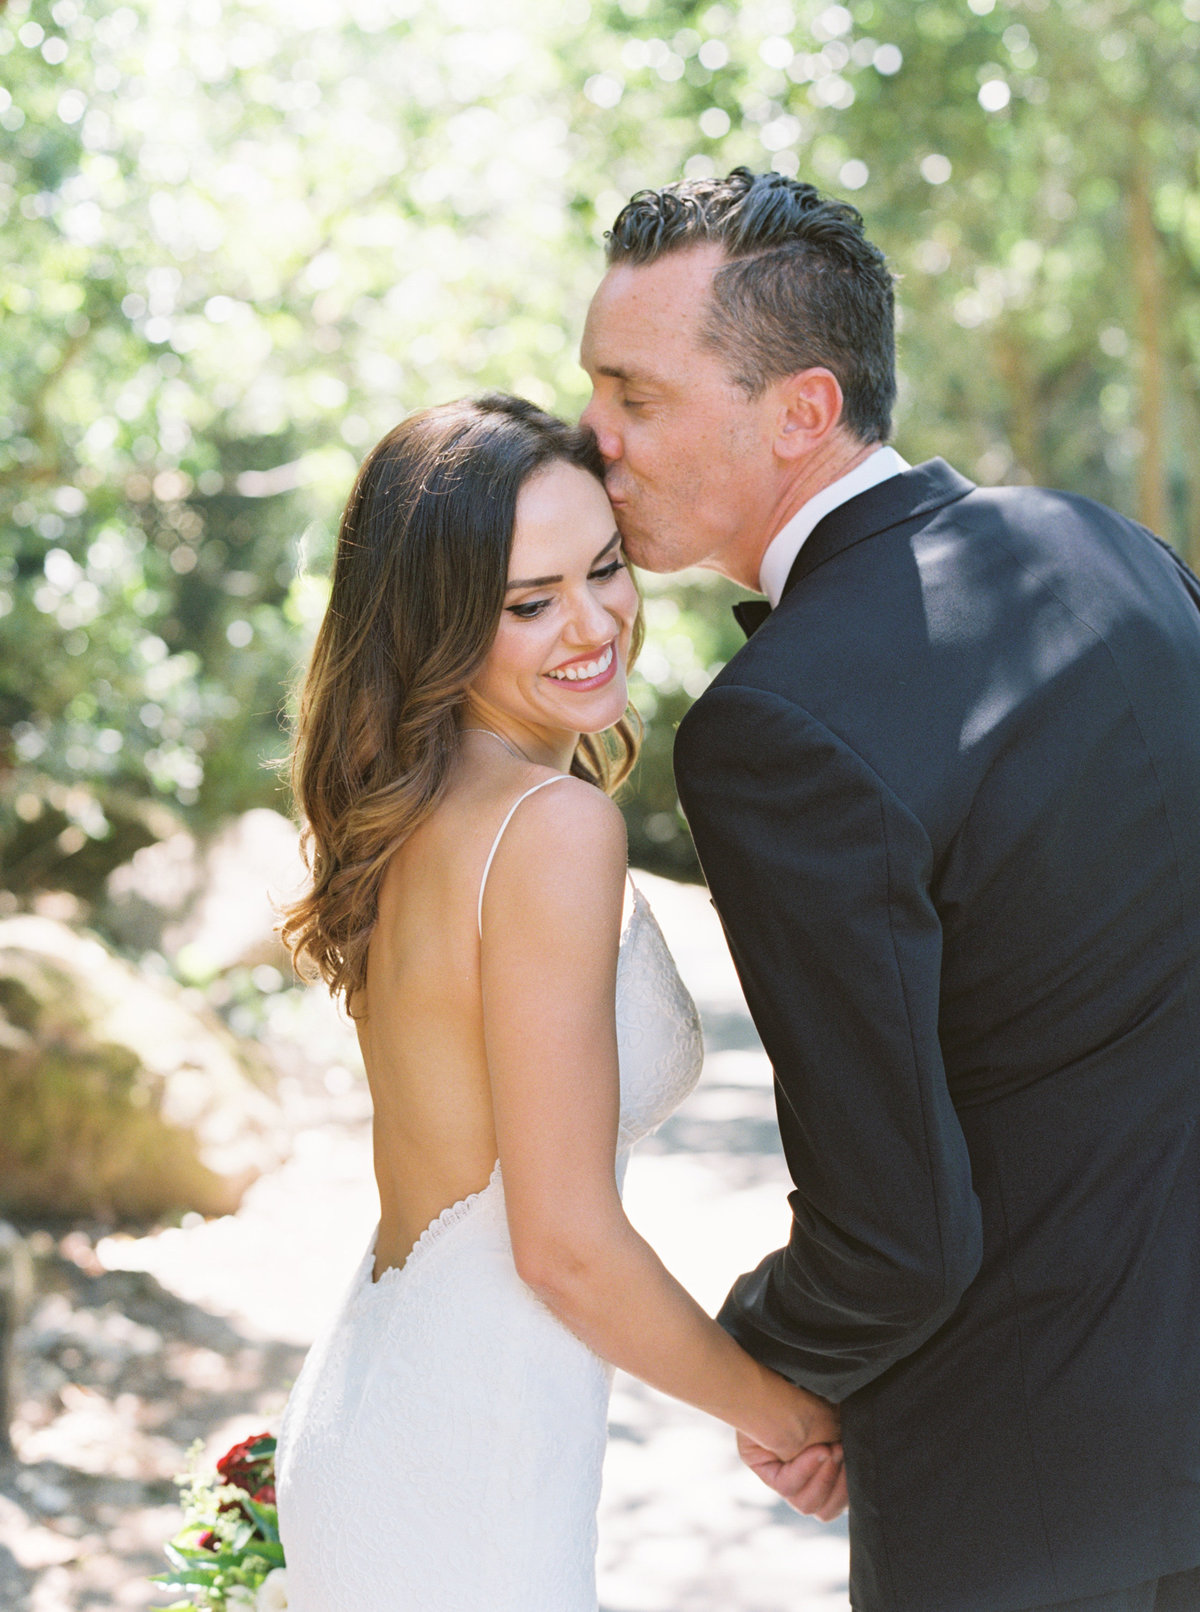 Angie + Stephen Meadowood French Laundry Elopement Wedding - Cassie Valente Photography 0047